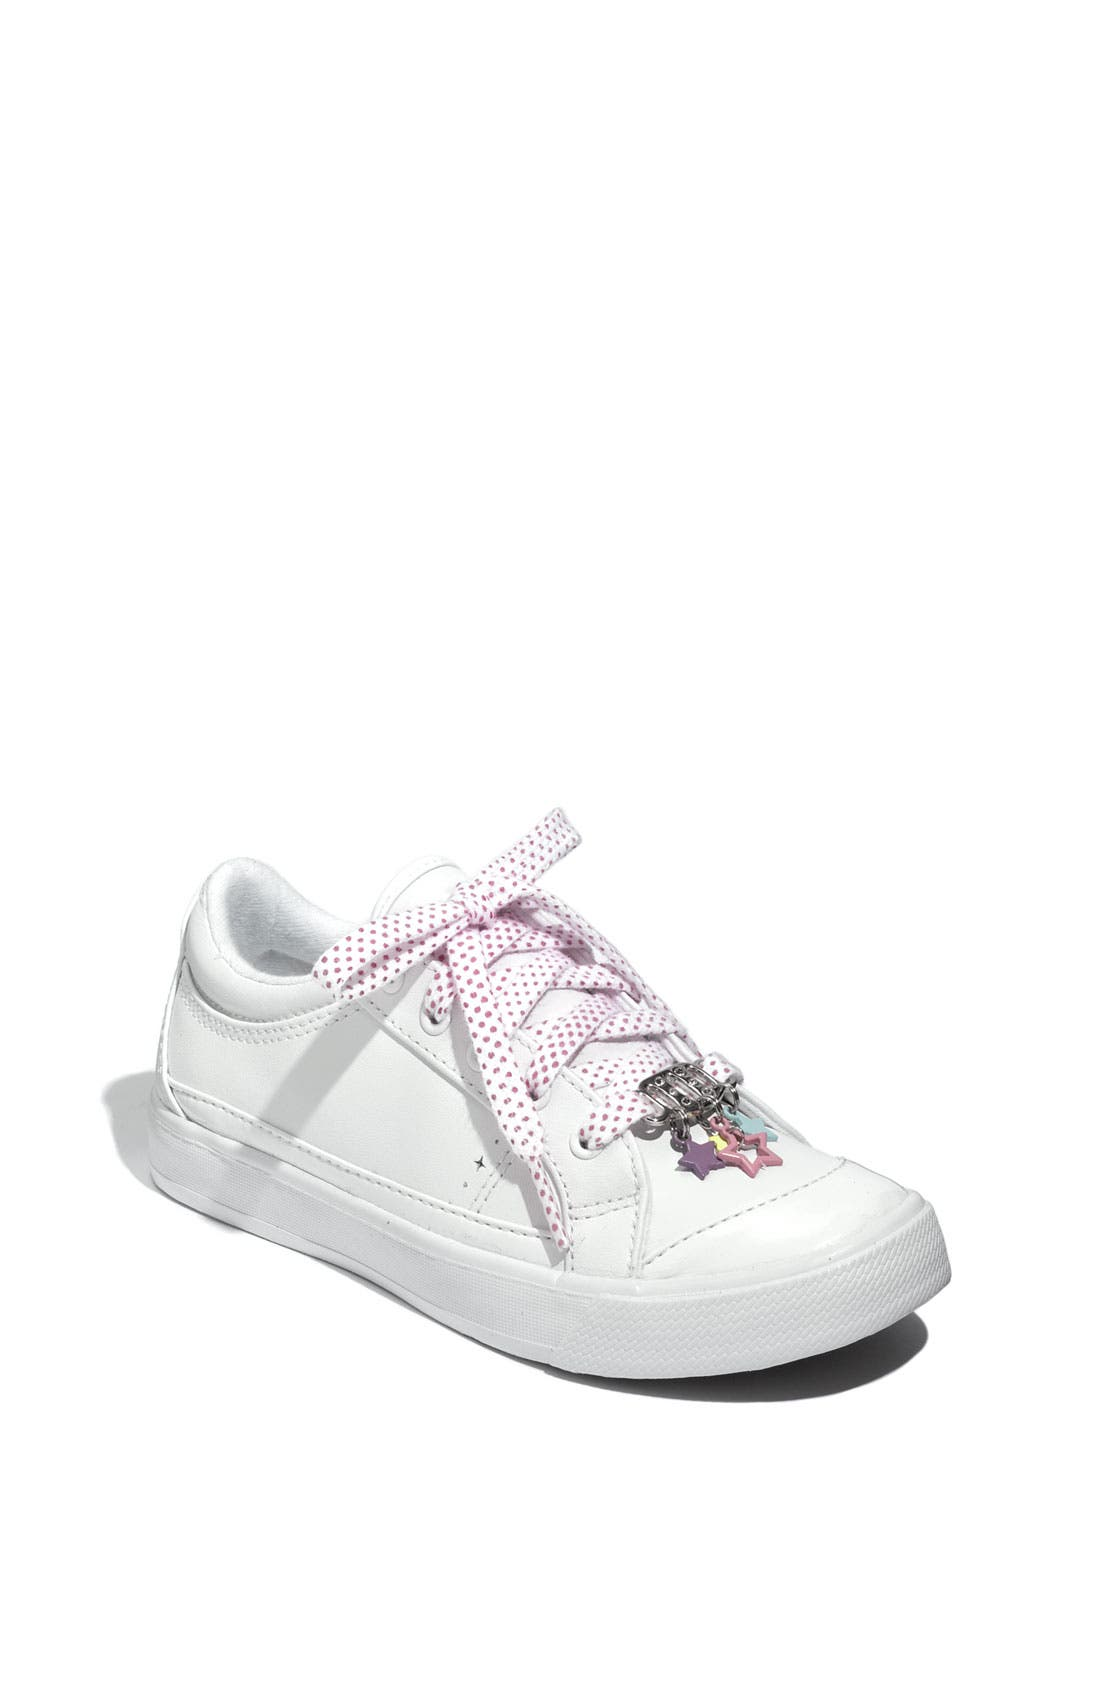 Main Image - Keds® 'Taylor' Lace Sneaker (Toddler, Little Kid & Big Kid)